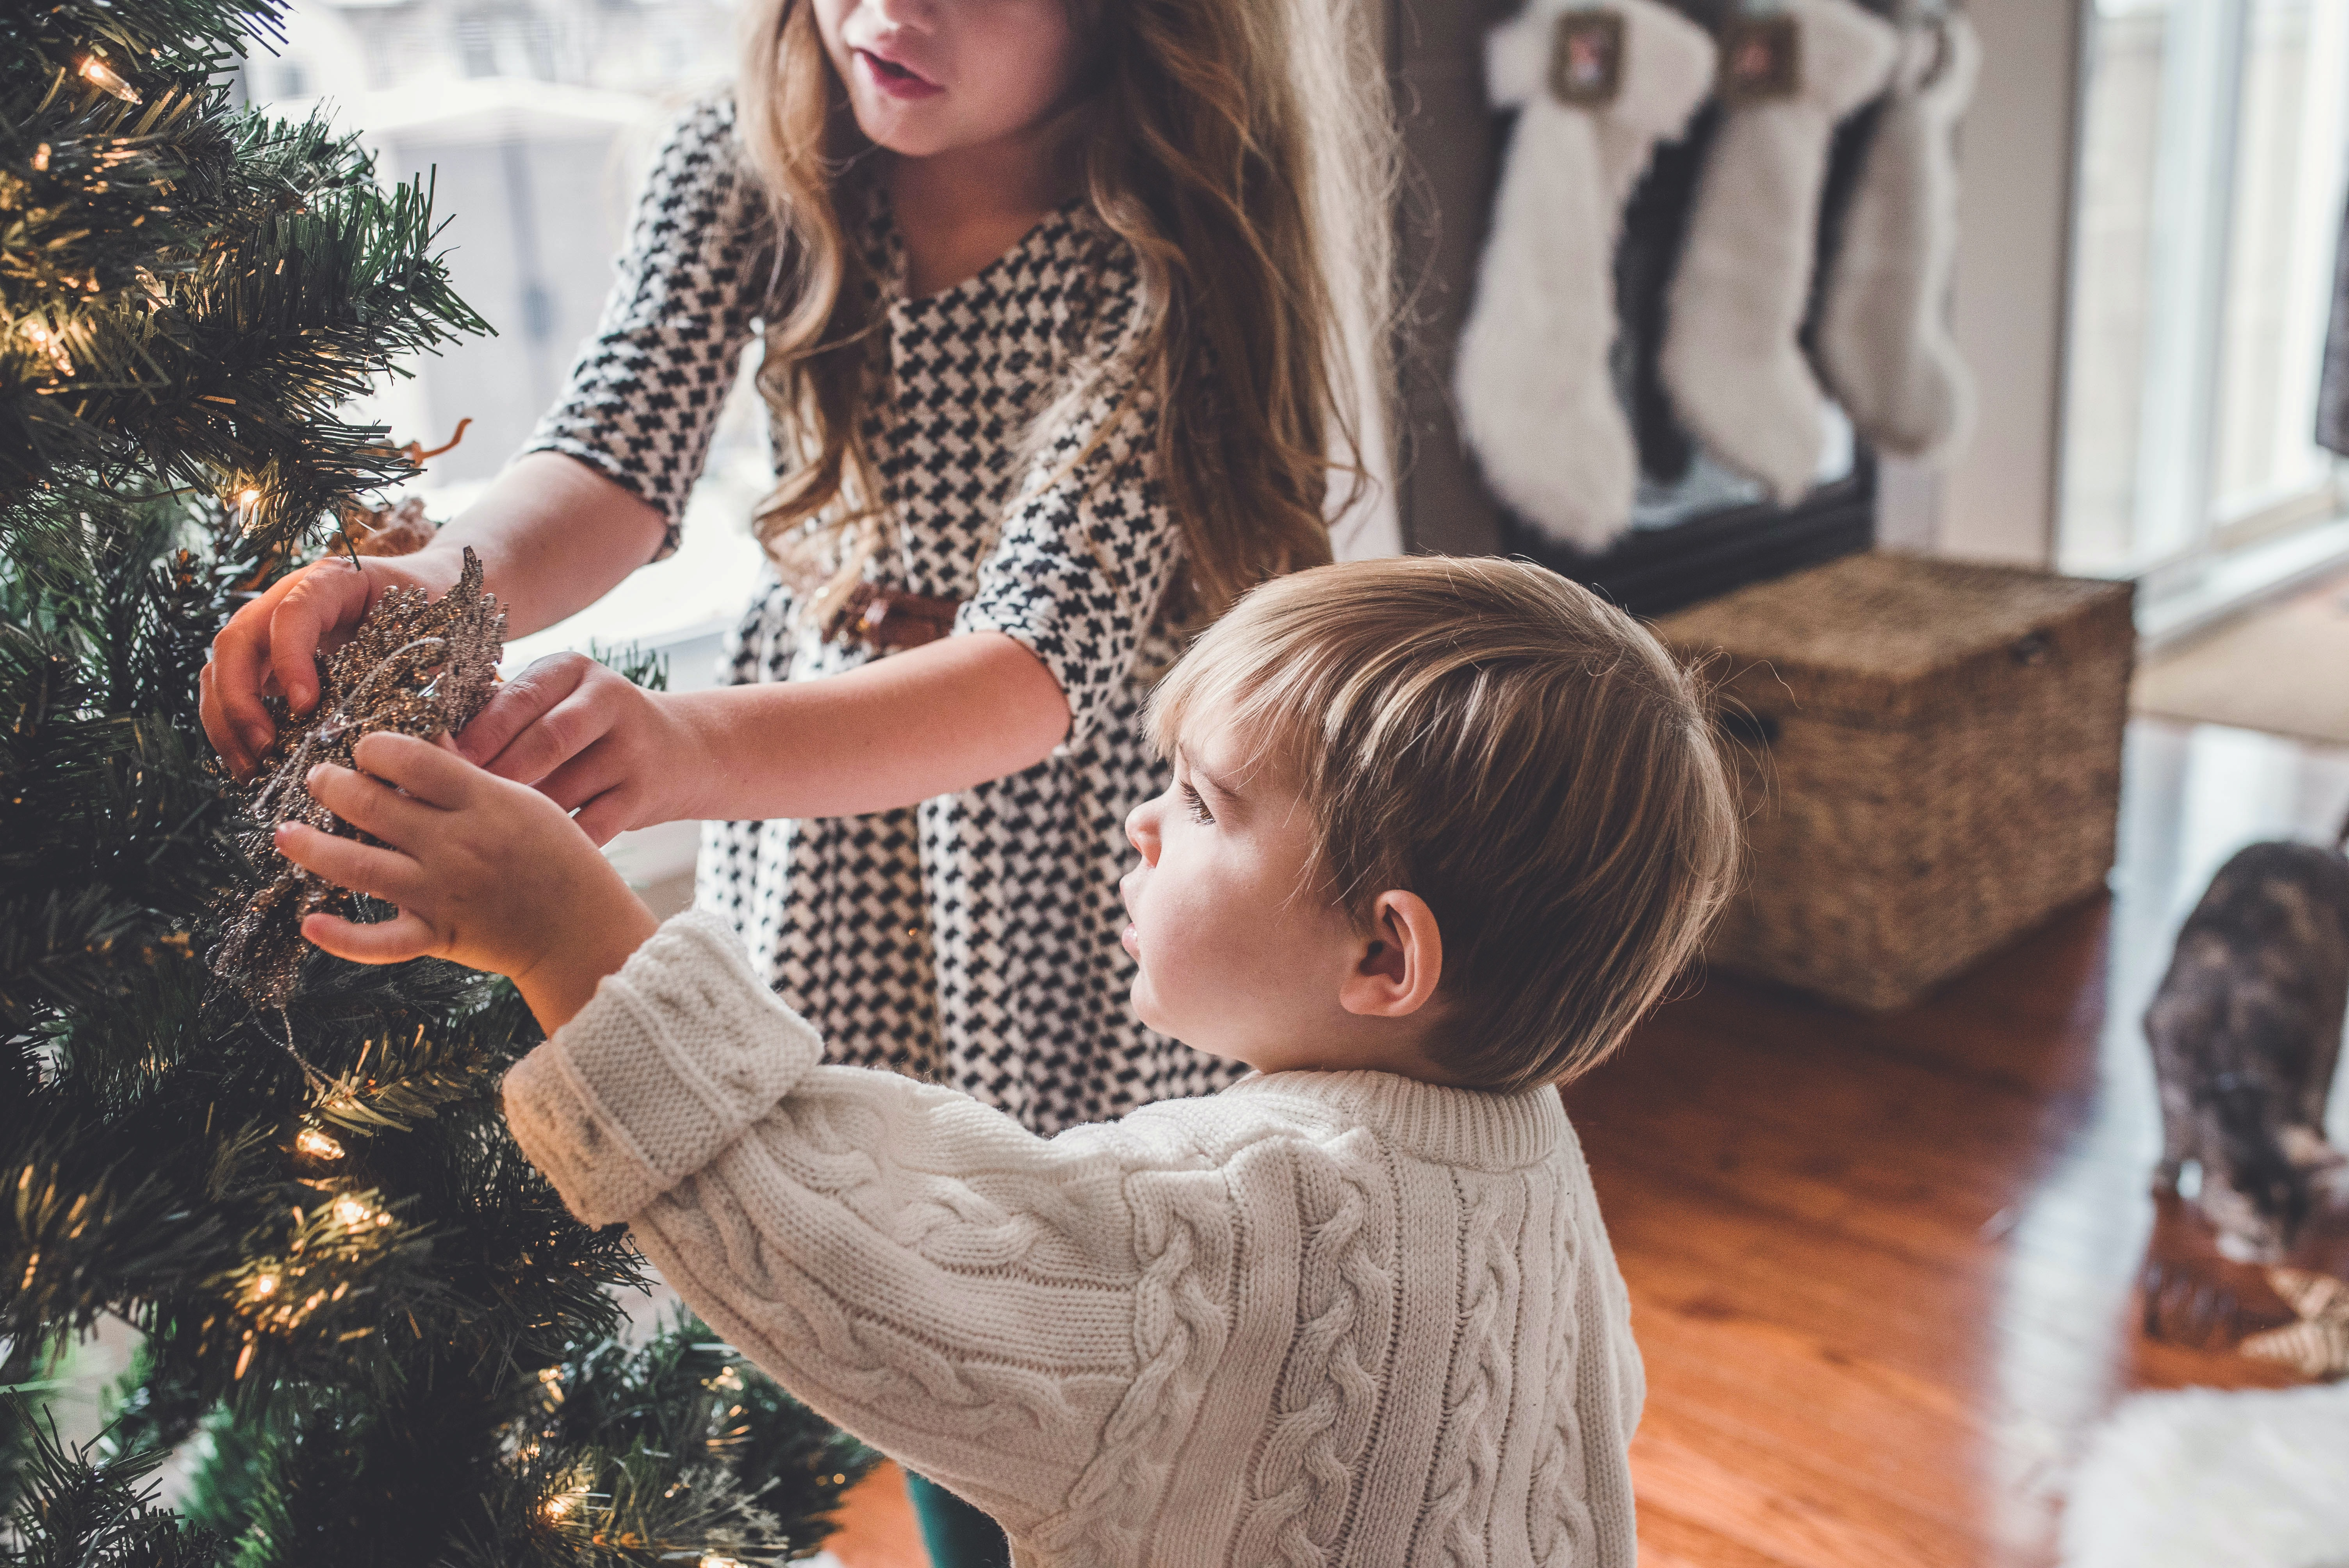 Article: GIFT IDEAS 3 TO 5 YEARS OLD